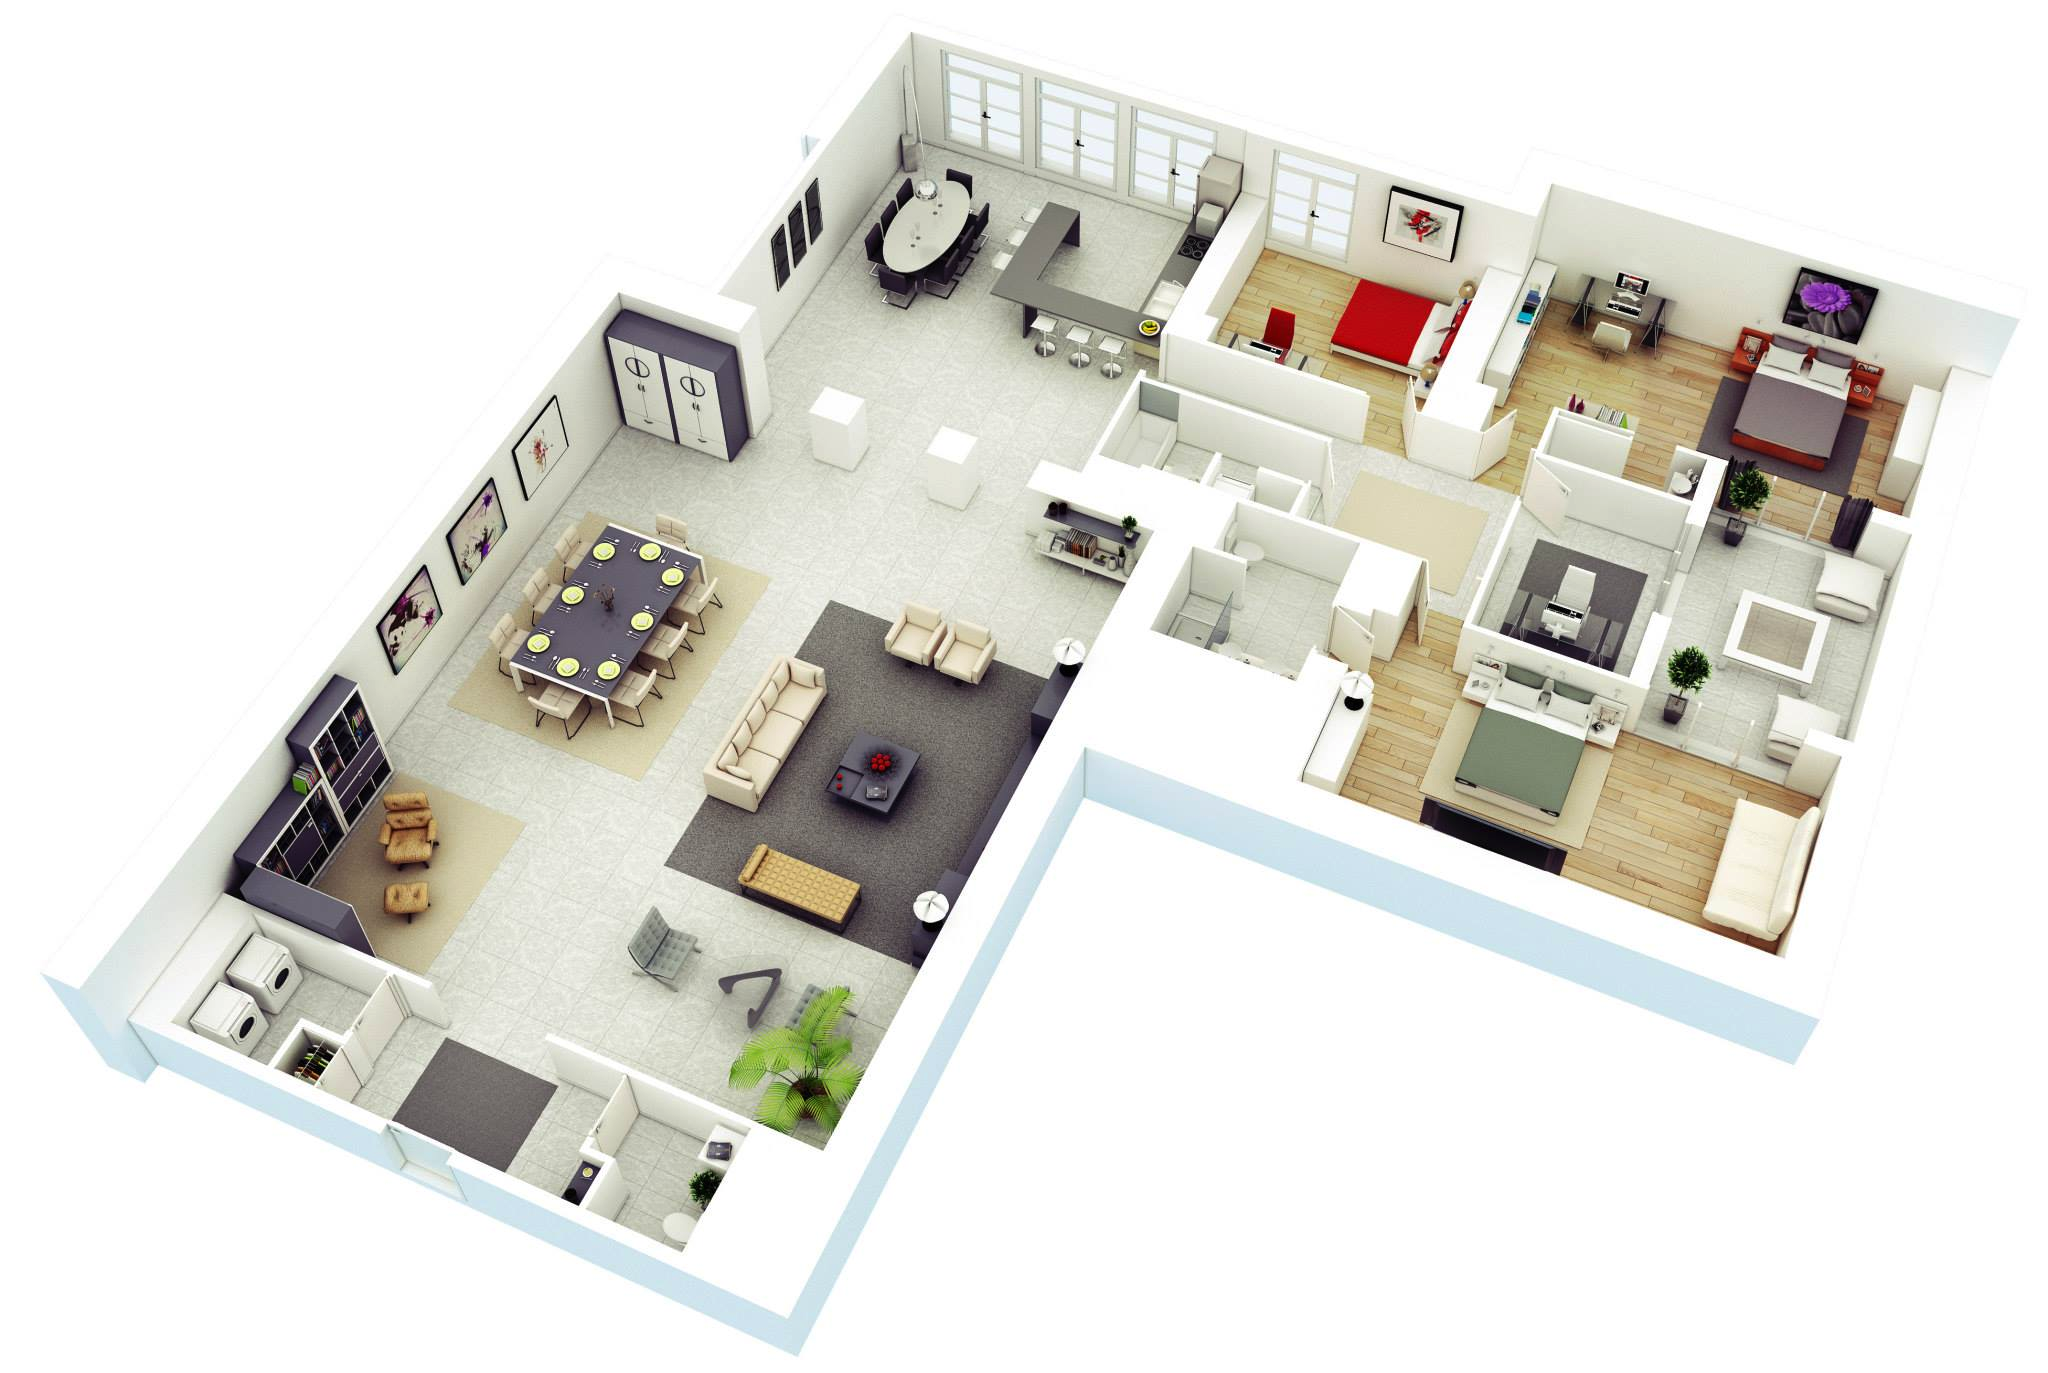 25 More 3 Bedroom 3D Floor Plans Top designers 3d and Architects